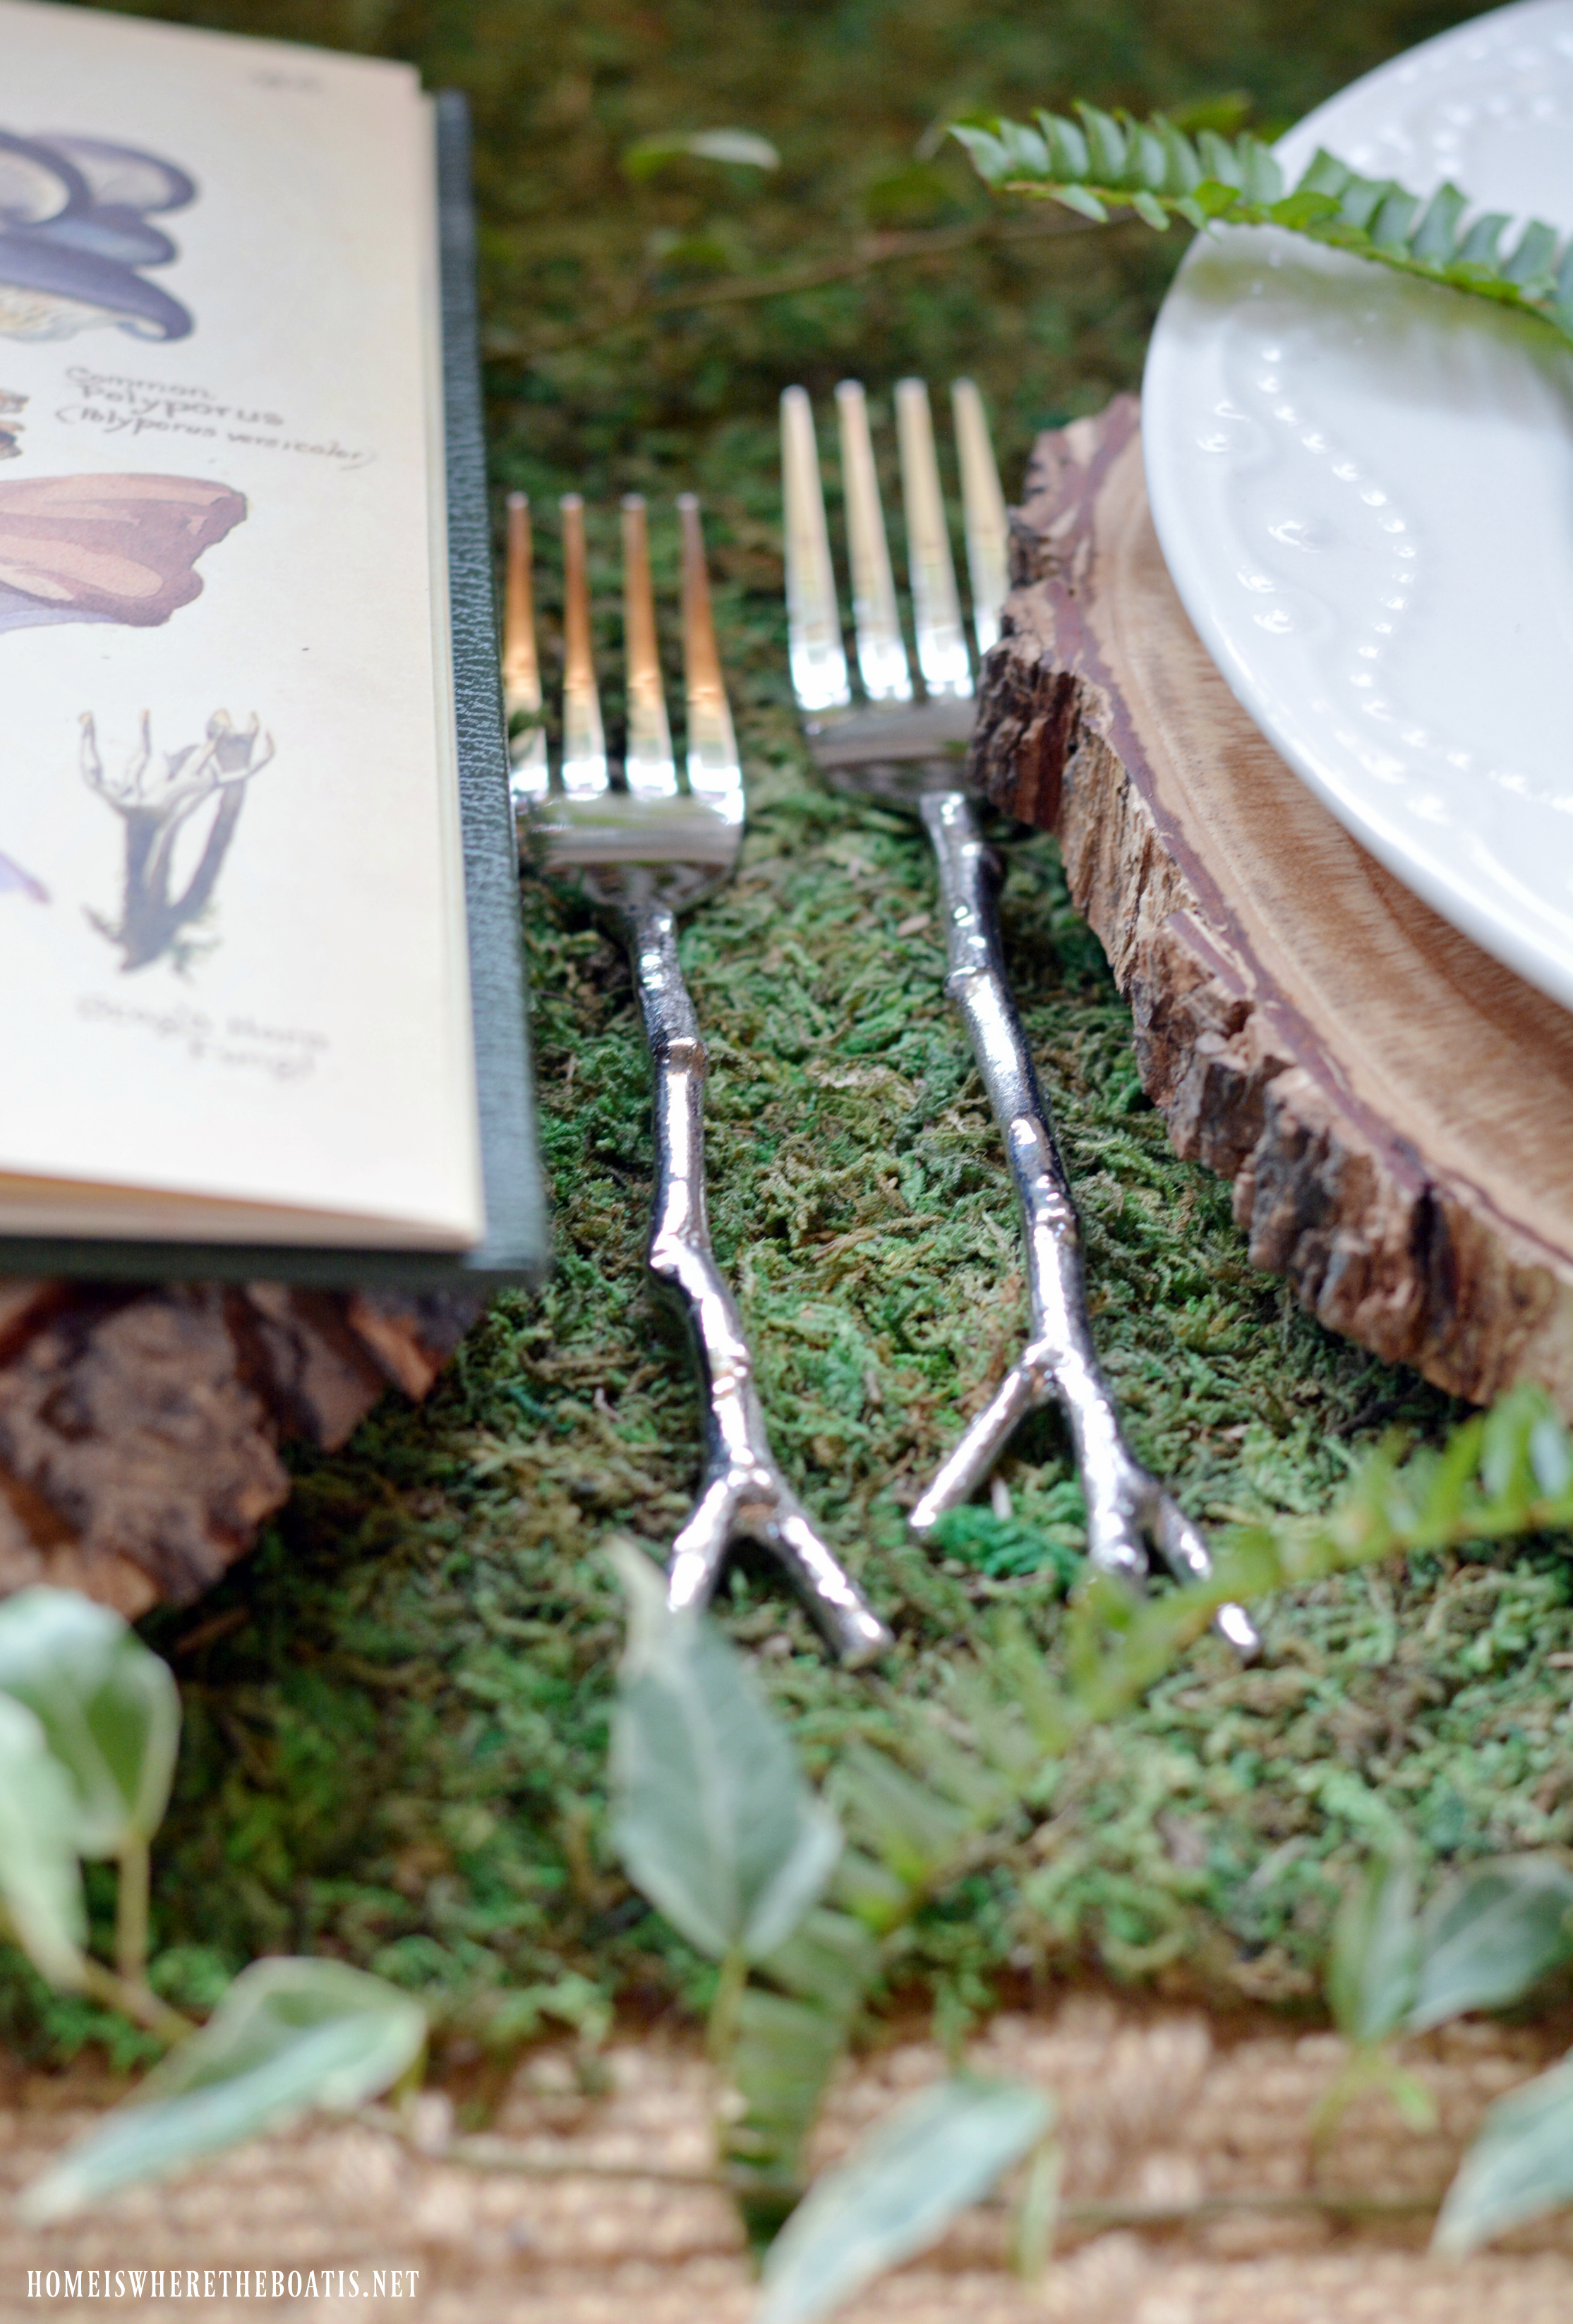 Twig Flatware Is Set For Woodland Dining.